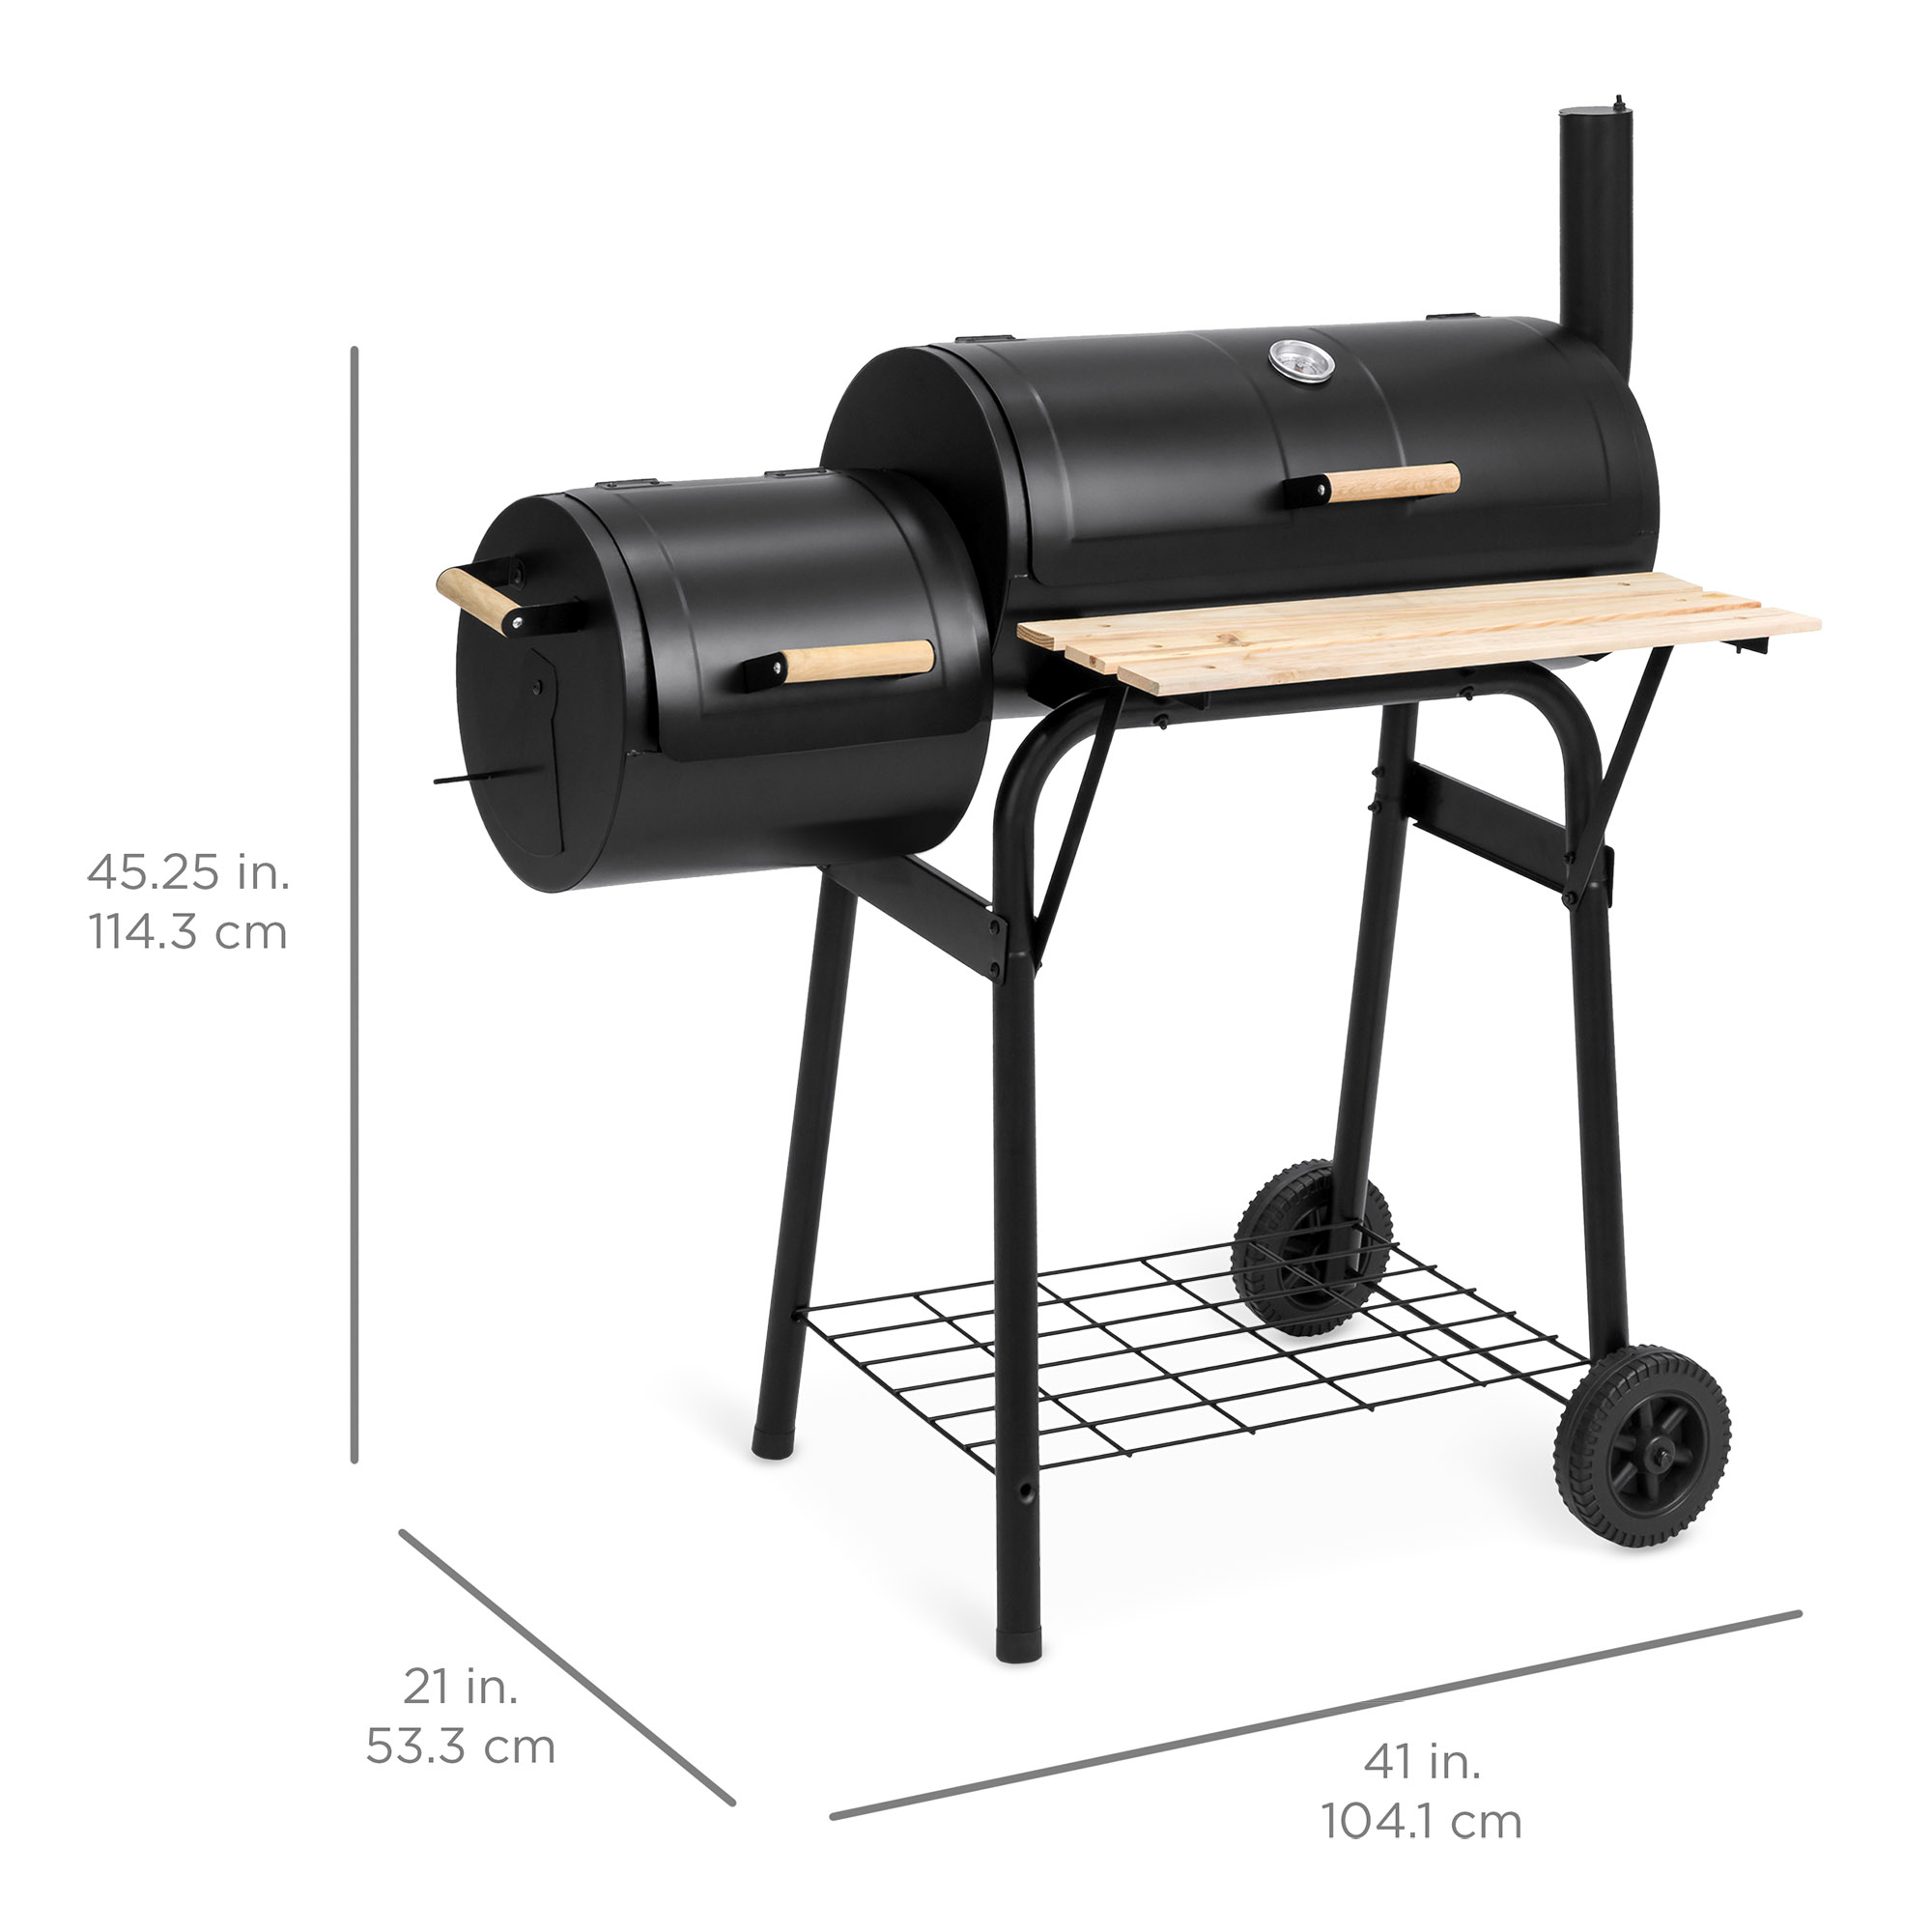 Outdoor Grill Best Choice Products Outdoor 2 In 1 Charcoal Bbq Grill Meat Smoker For Home Backyard W Temperature Gauge Metal Grates Black